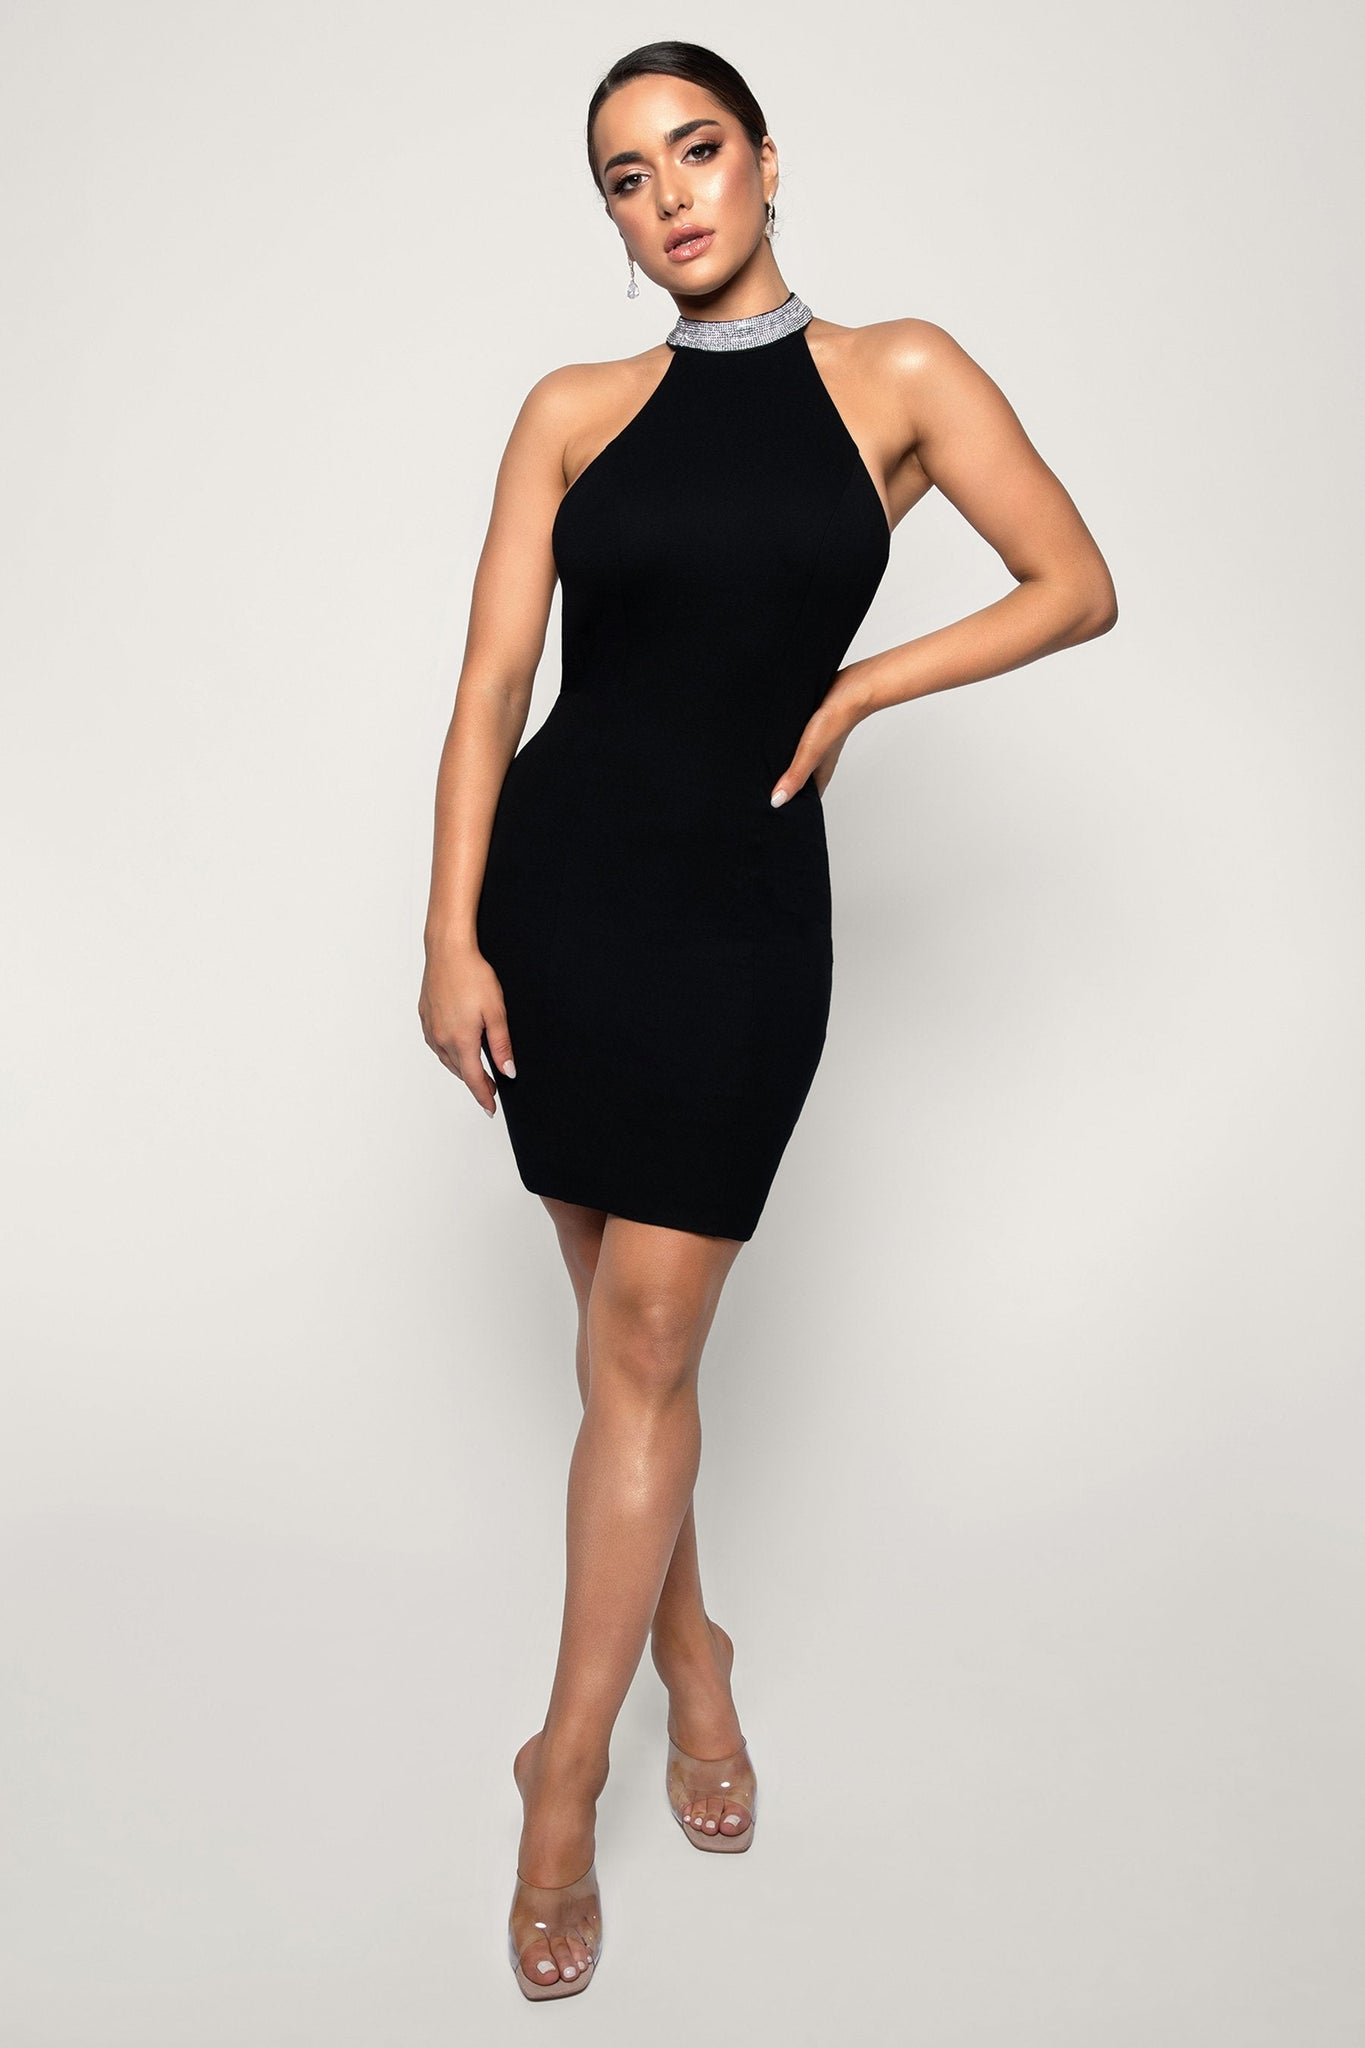 Stephanie Diamante Back Mini Dress - Black - MESHKI